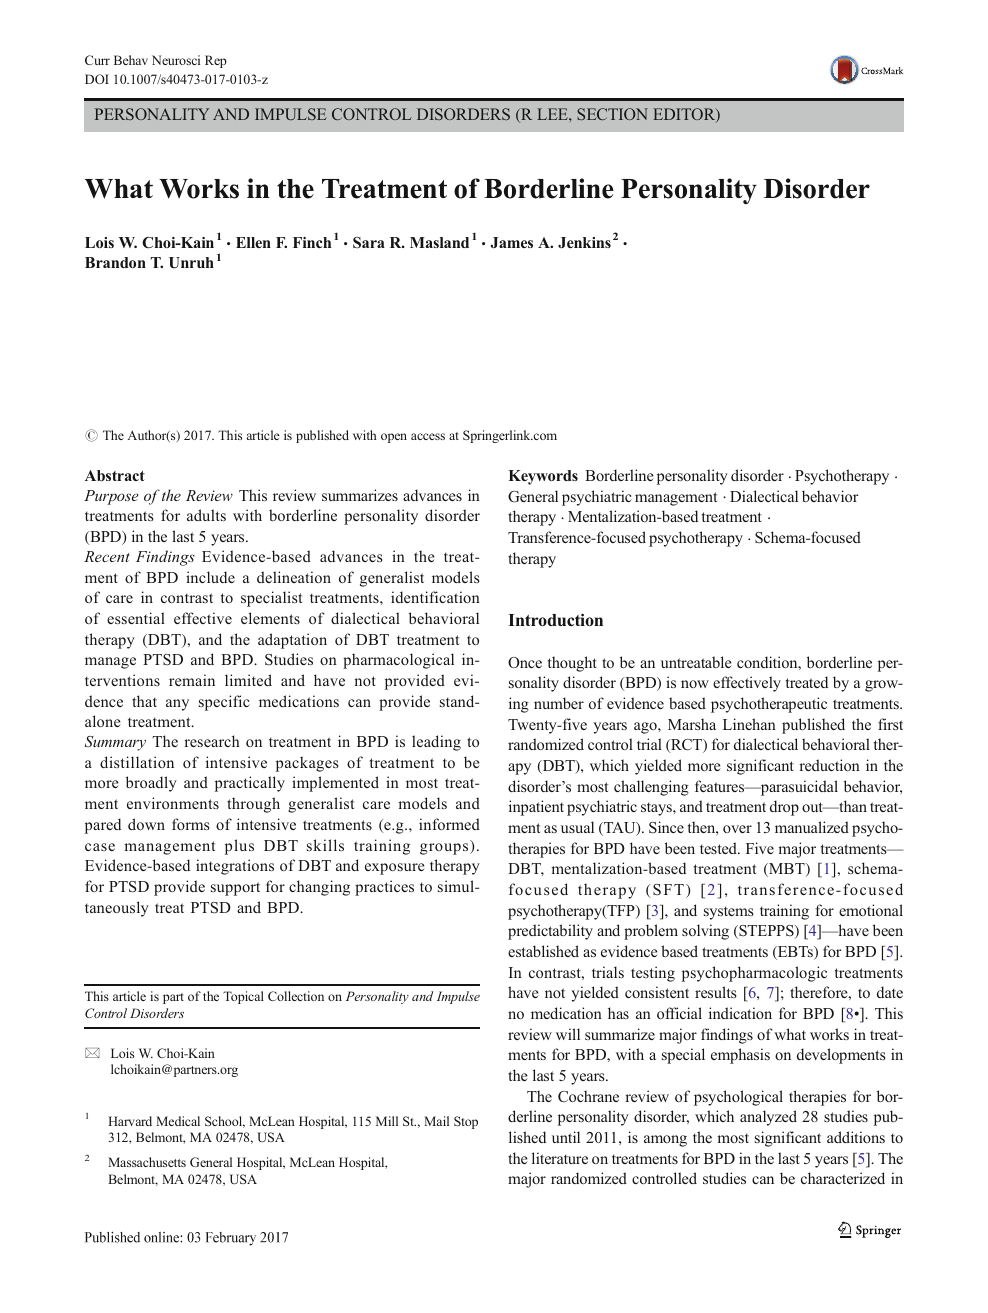 What Works in the Treatment of Borderline Personality